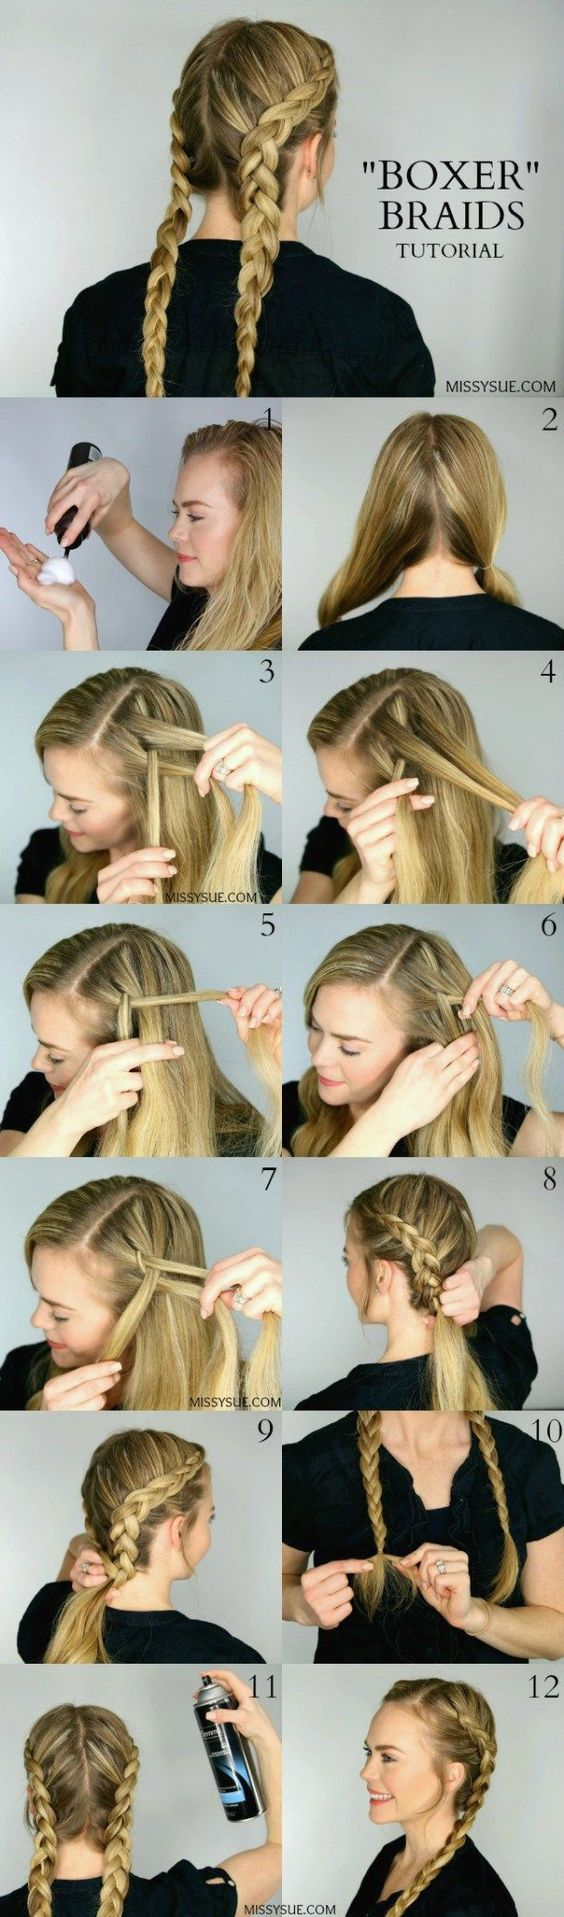 boxer-braids-tutorial-4: